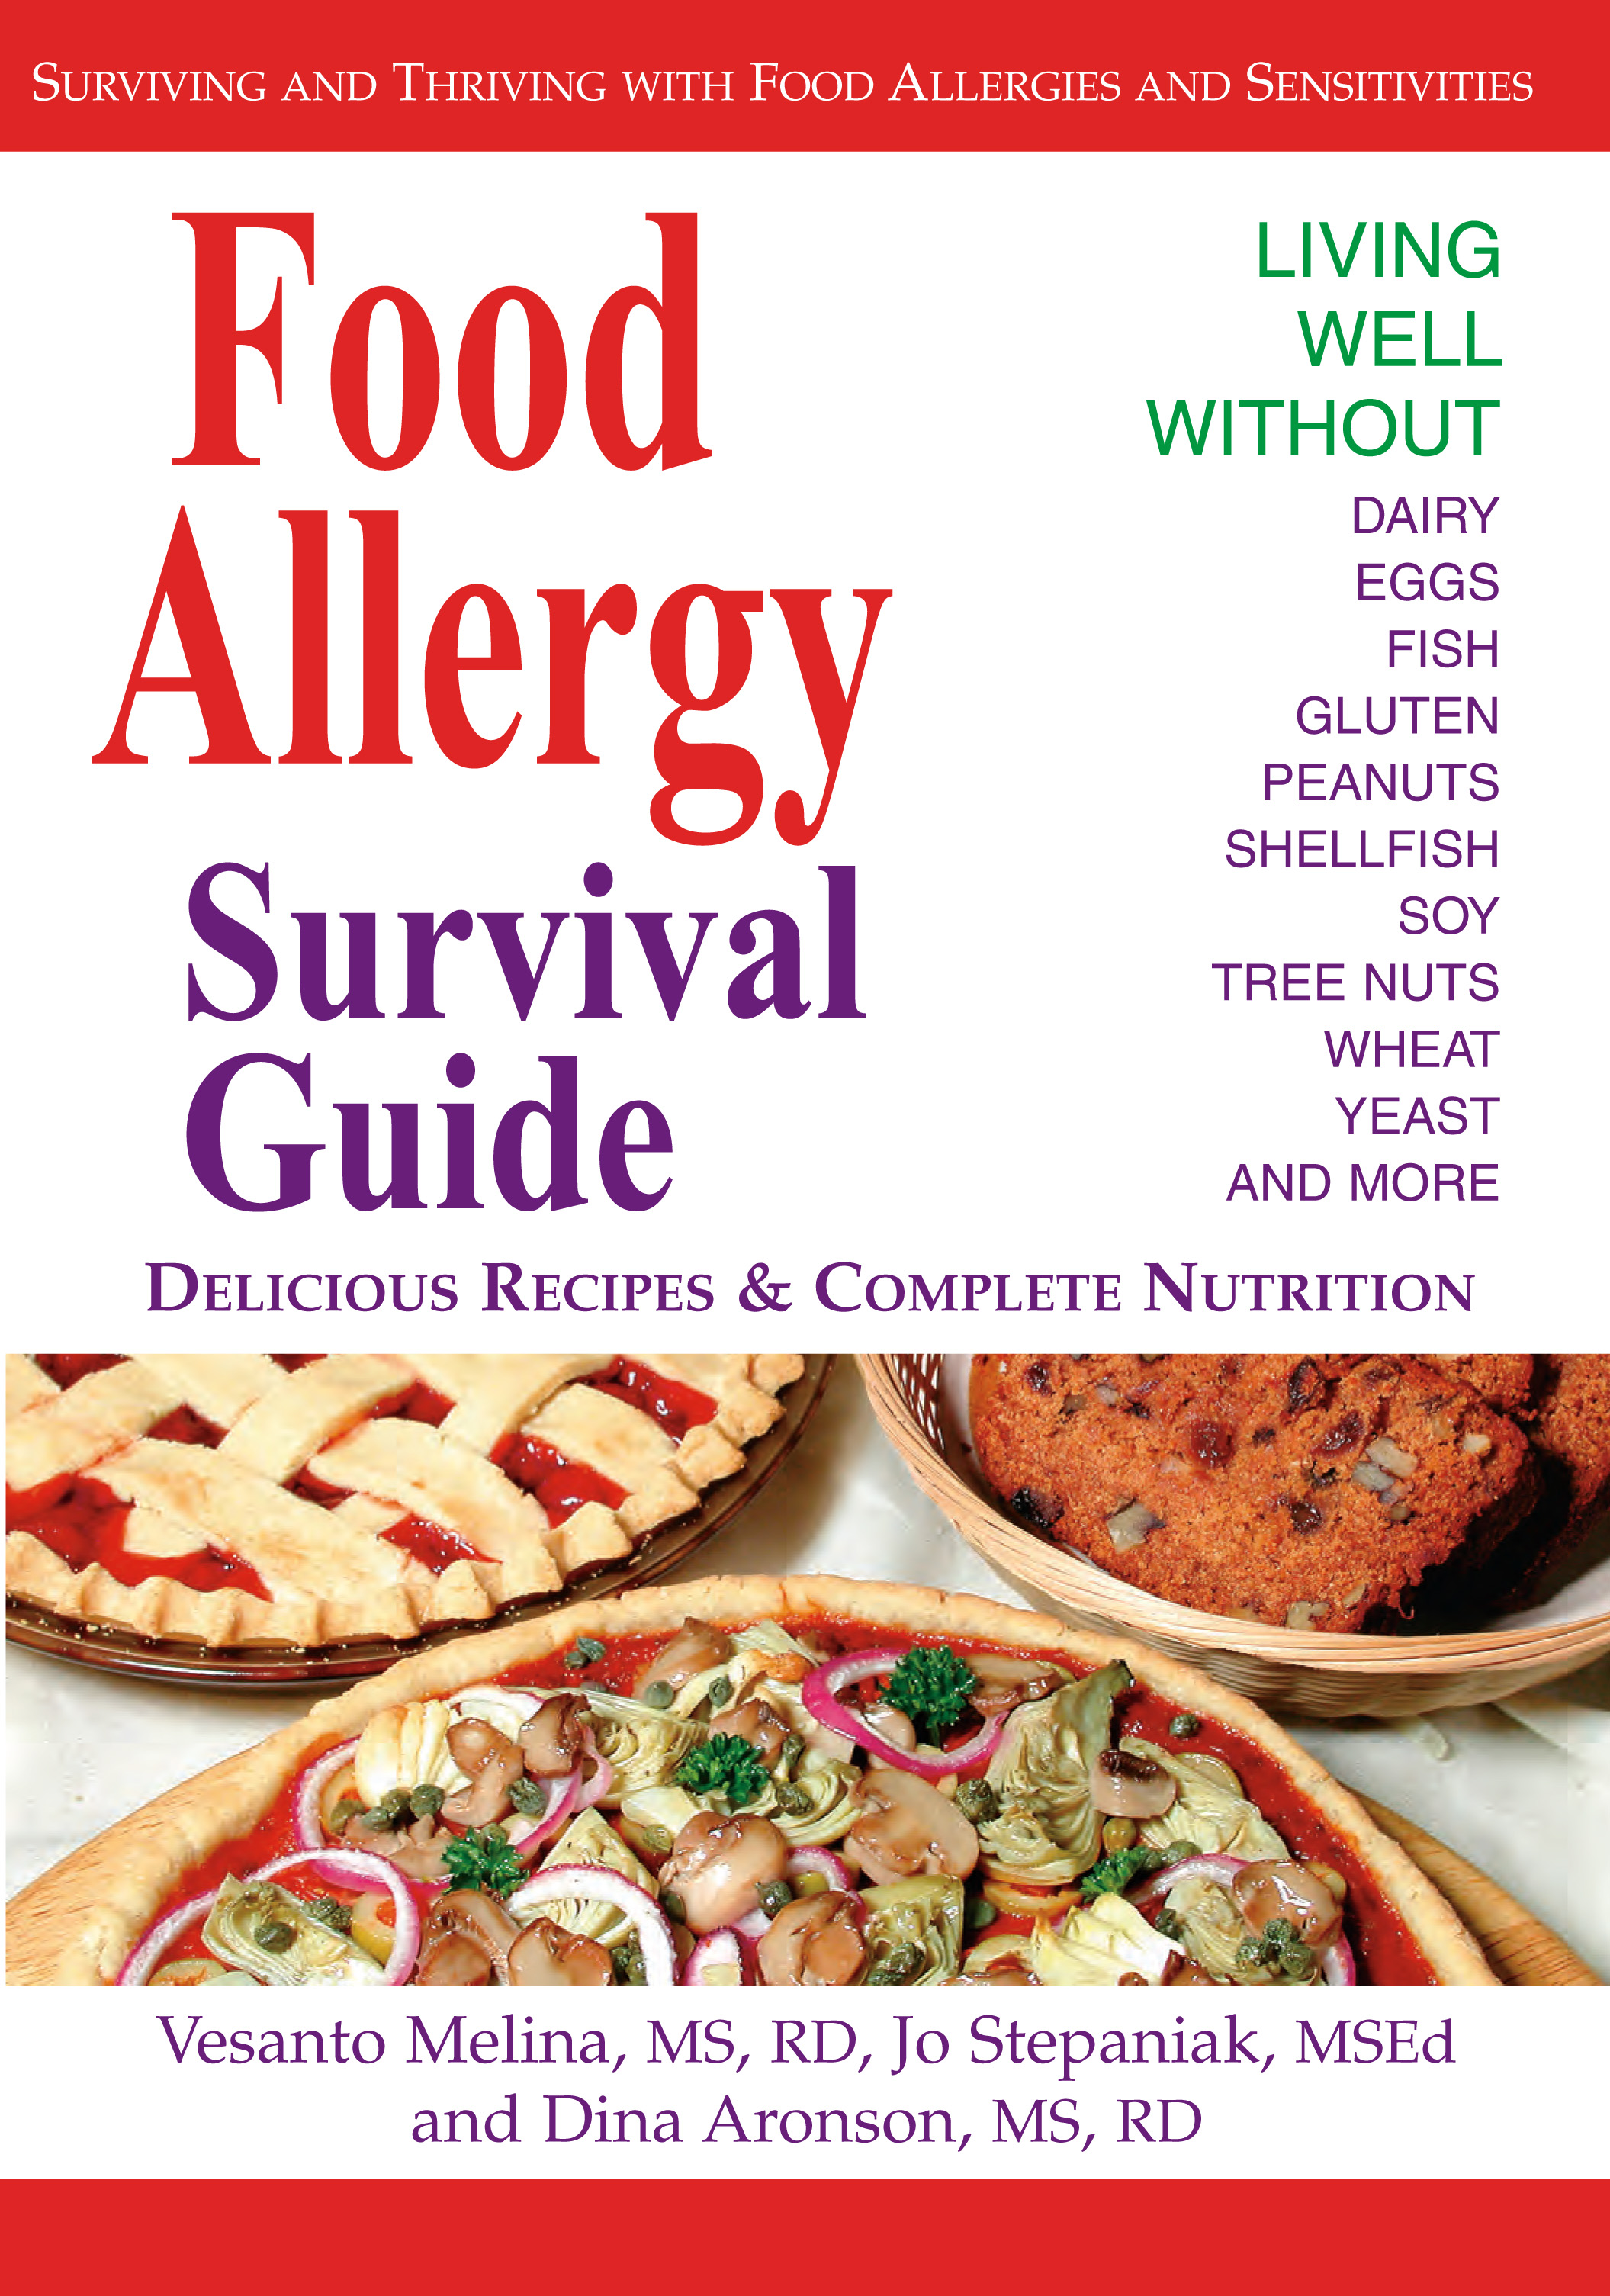 Food allergy survival guide surviving and thriving with food food allergy survival guide surviving and thriving with food allergies and sensitivities forumfinder Image collections